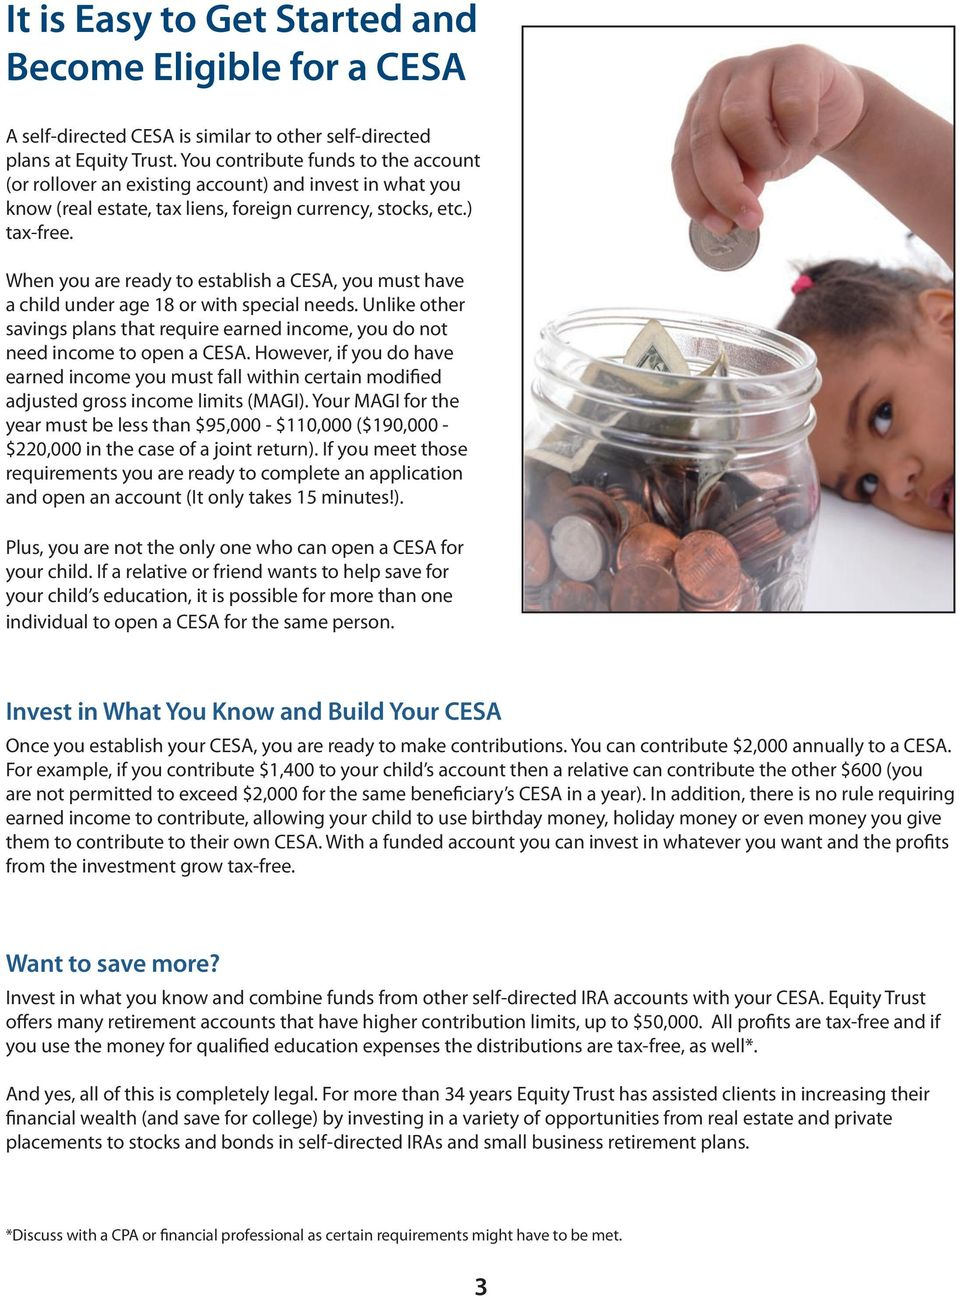 When you are ready to establish a CESA, you must have a child under age 18 or with special needs. Unlike other savings plans that require earned income, you do not need income to open a CESA.